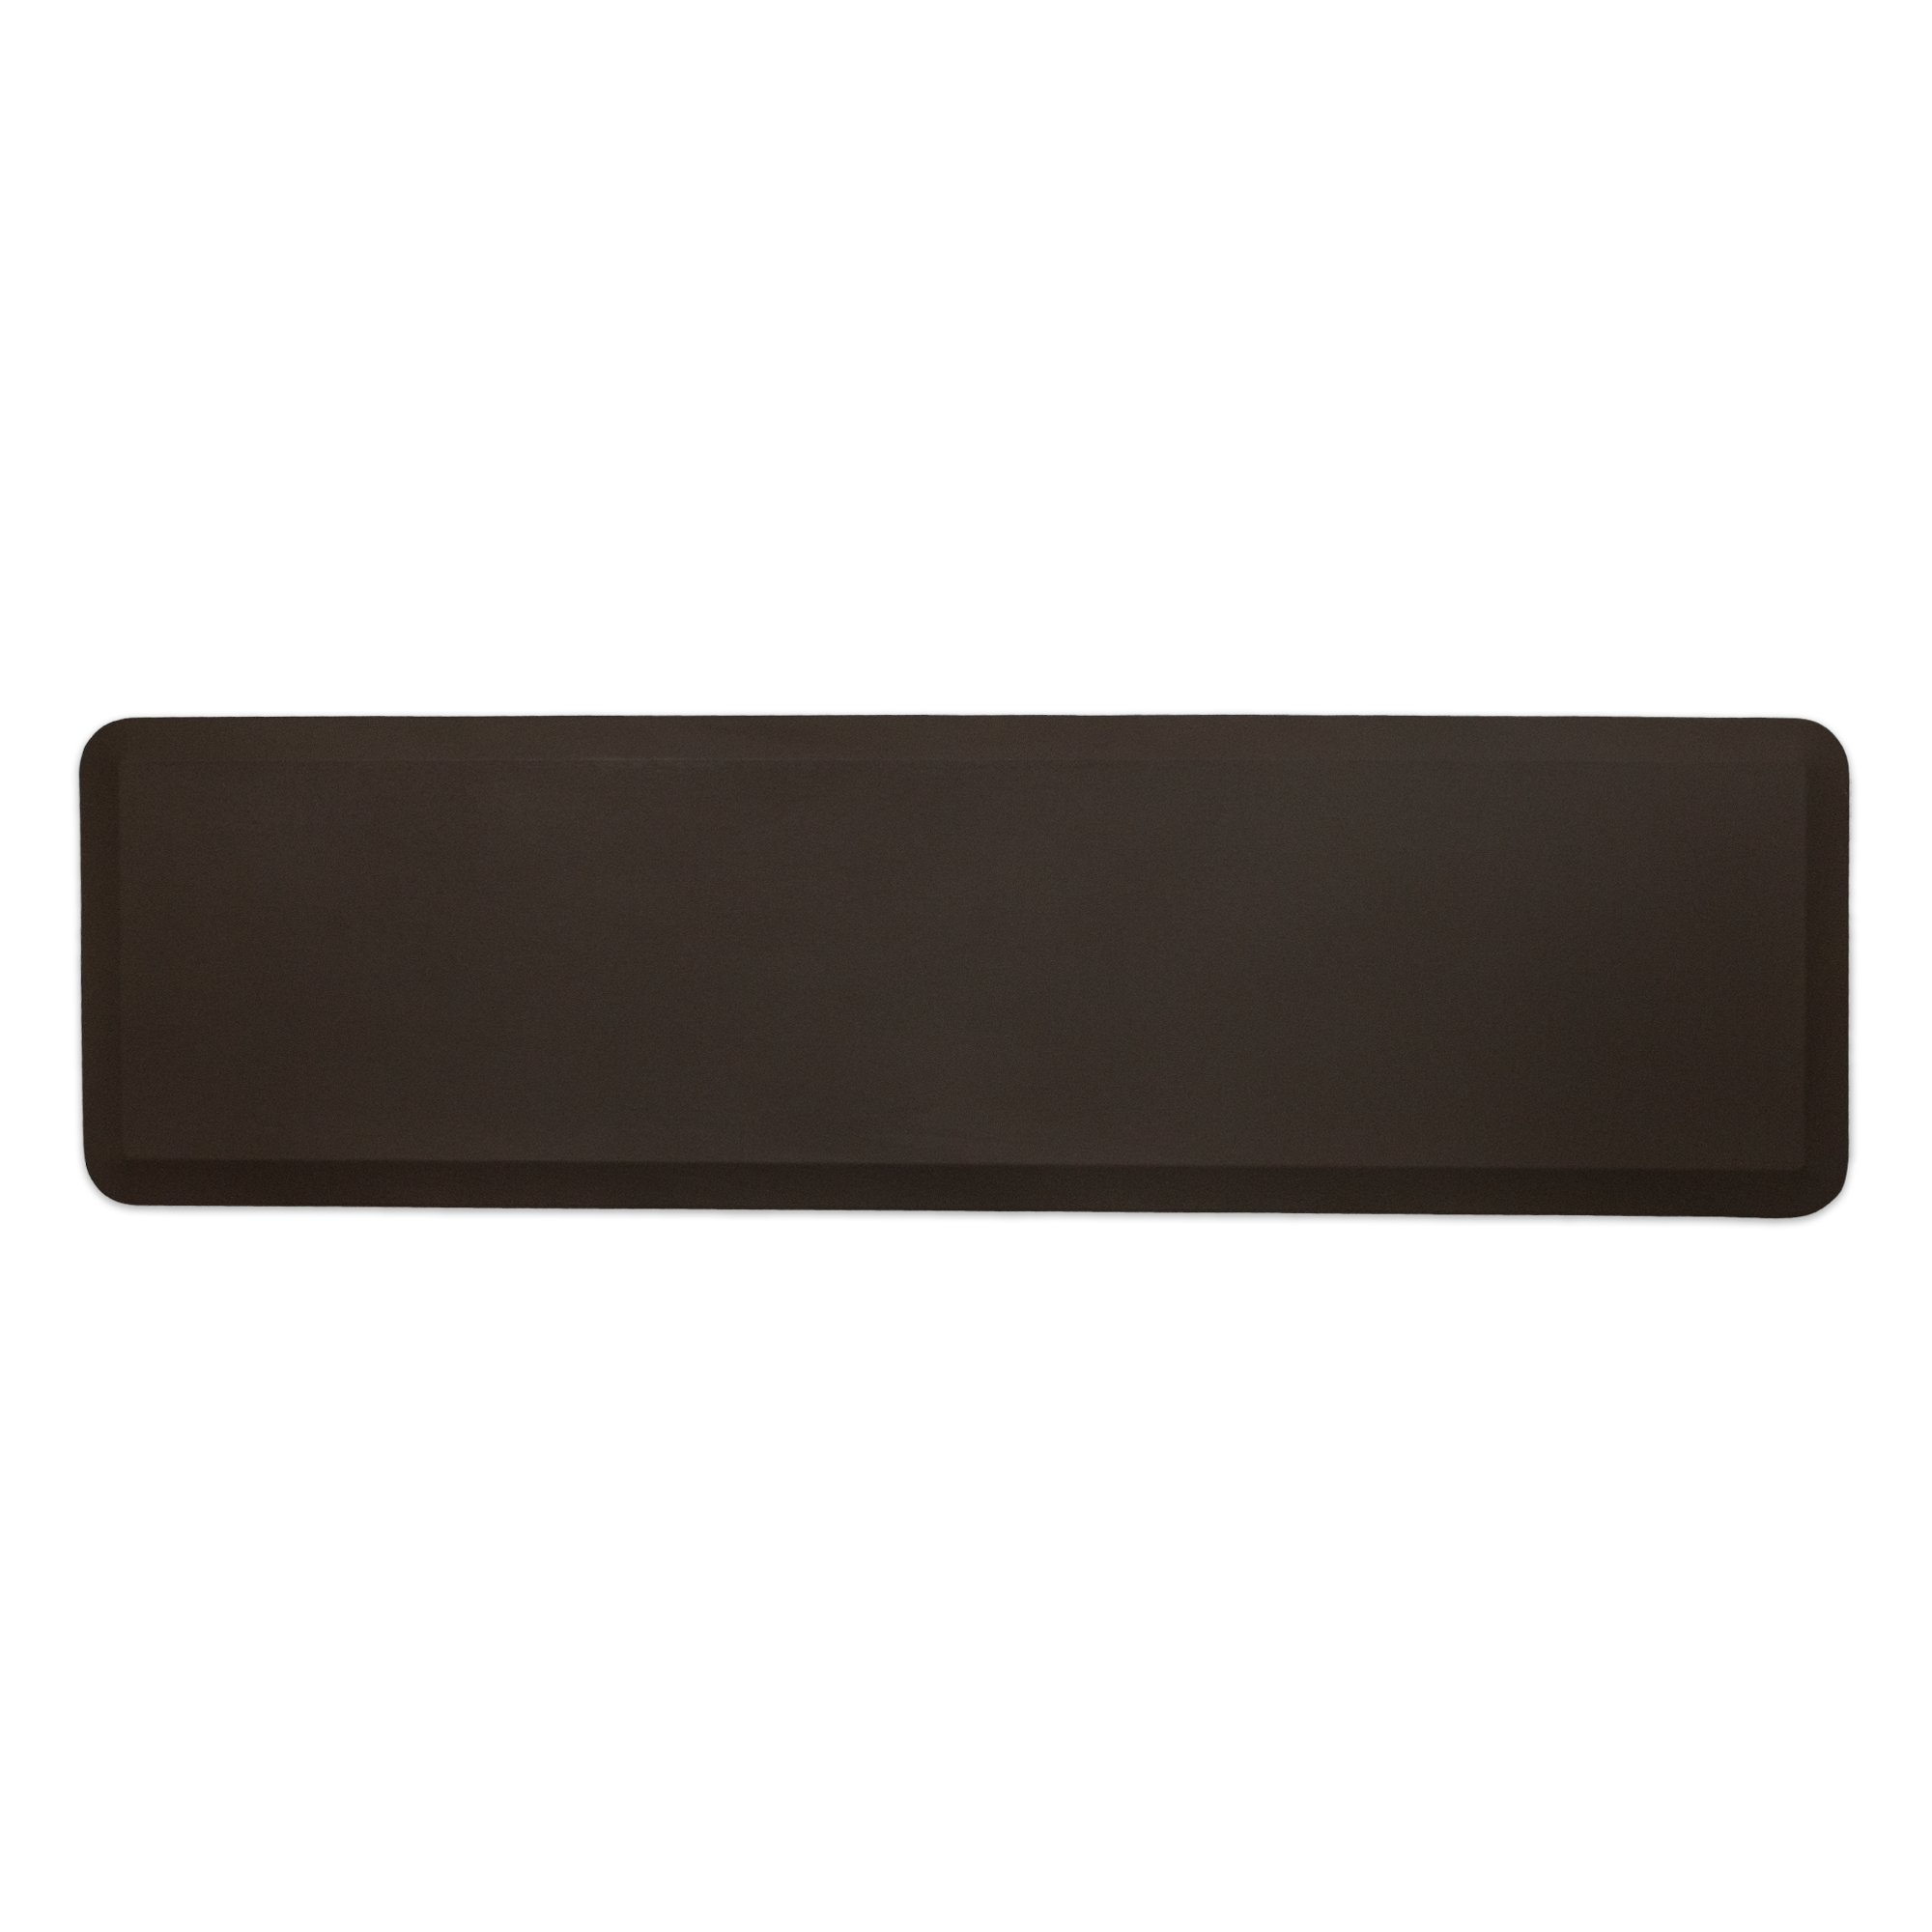 """NewLife by GelPro Professional Grade Anti-Fatigue Kitchen & Office Comfort Mat, 20x72, Earth ¾"""" Bio-Foam Mat with non-slip bottom for health & wellness by NewLife by GelPro (Image #1)"""